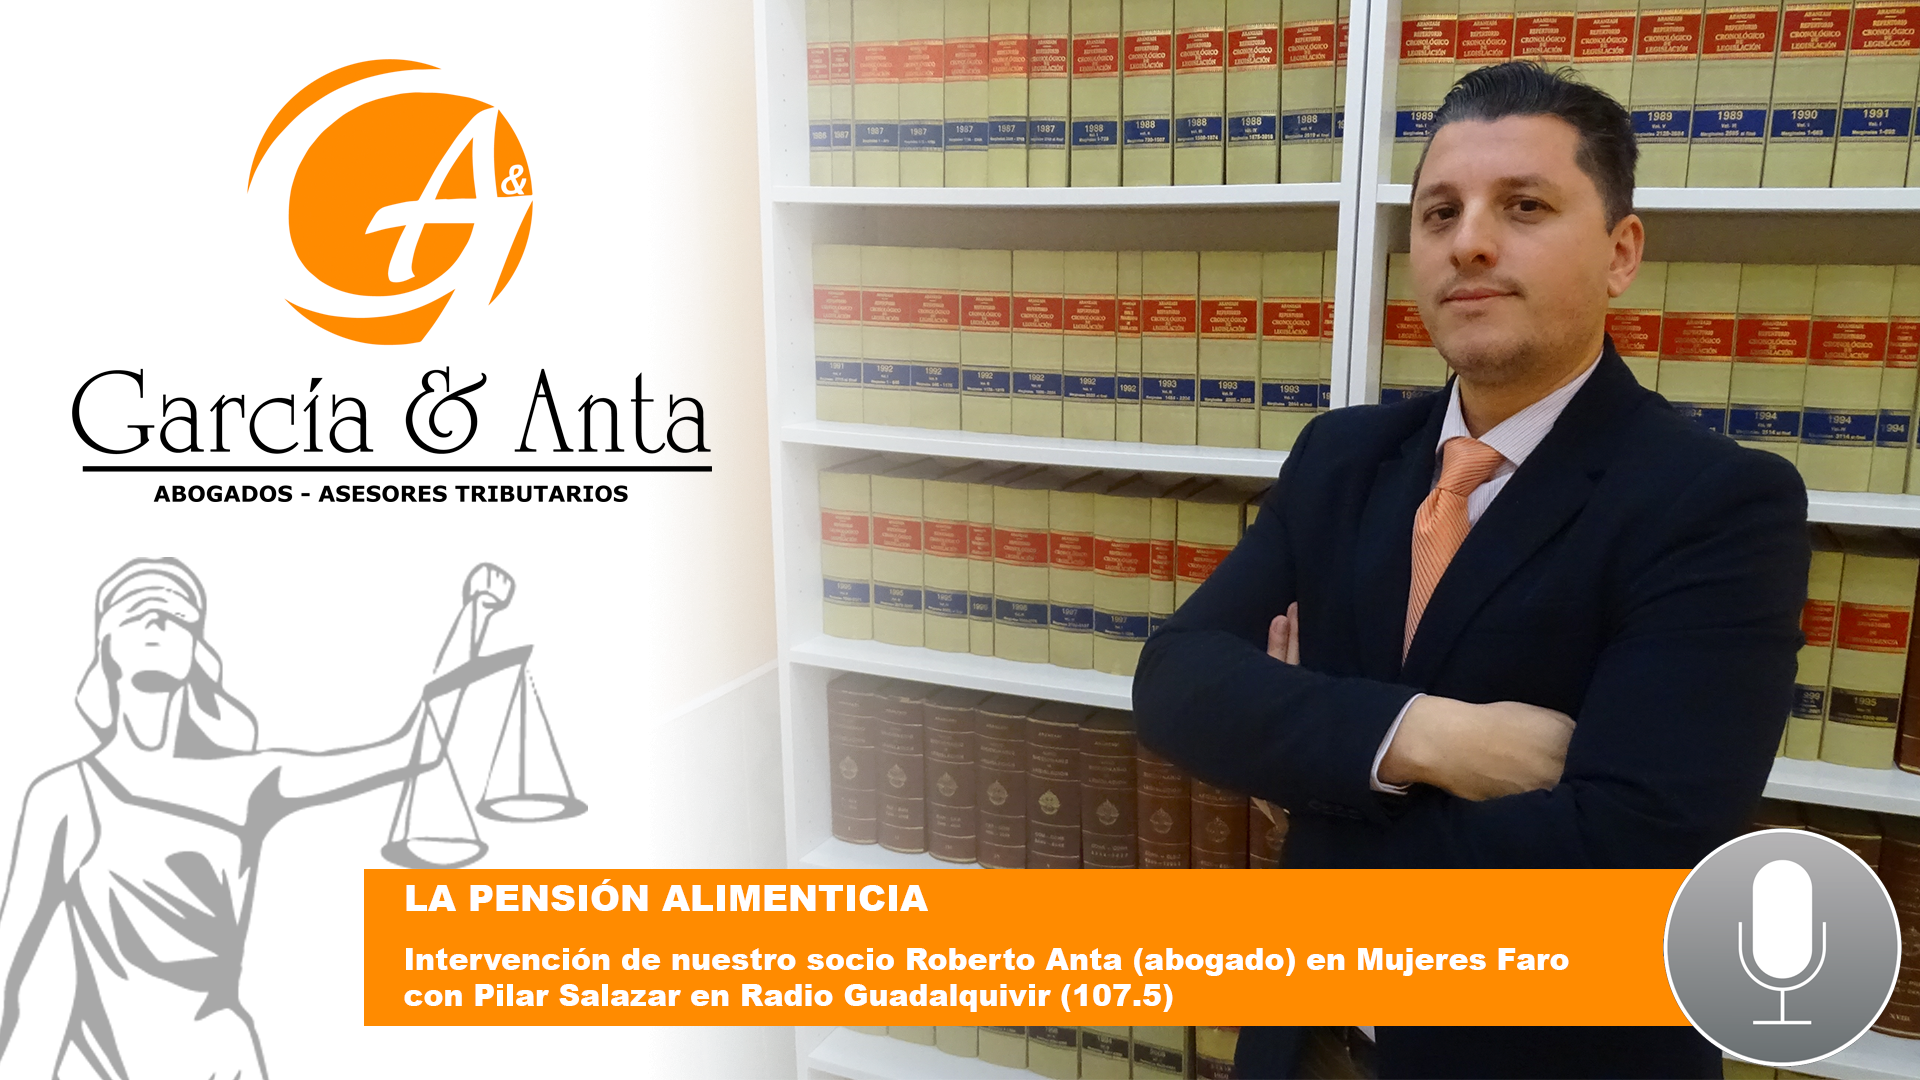 abogado-pension-alimentos